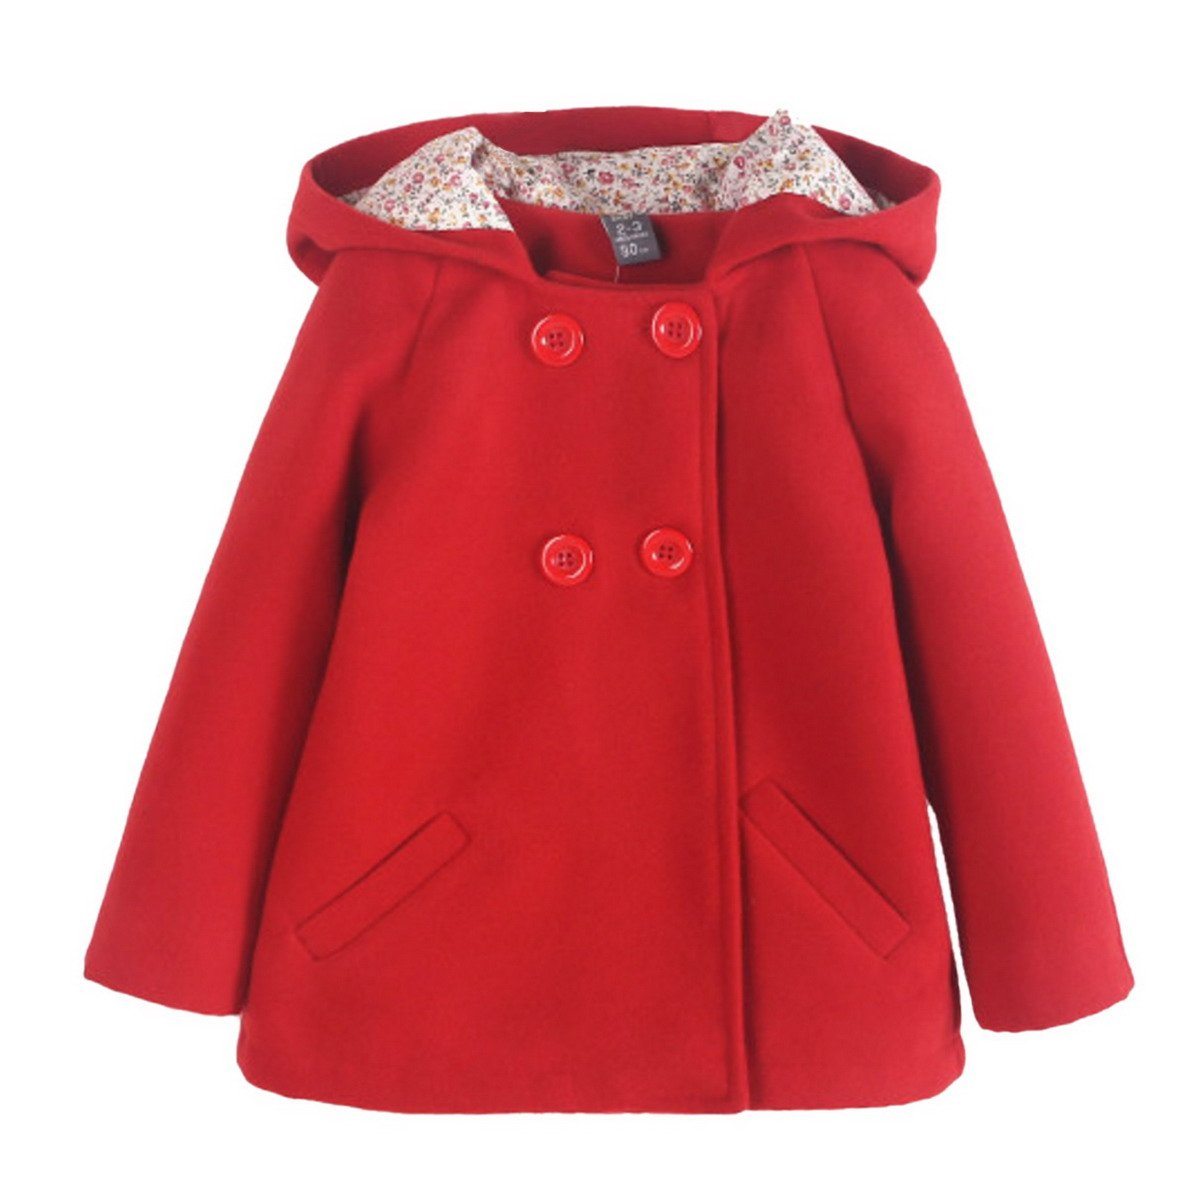 Children Girls Coat Windbreaker Winter Jacket Double-breasted Hooded Outwear Happy Cherry